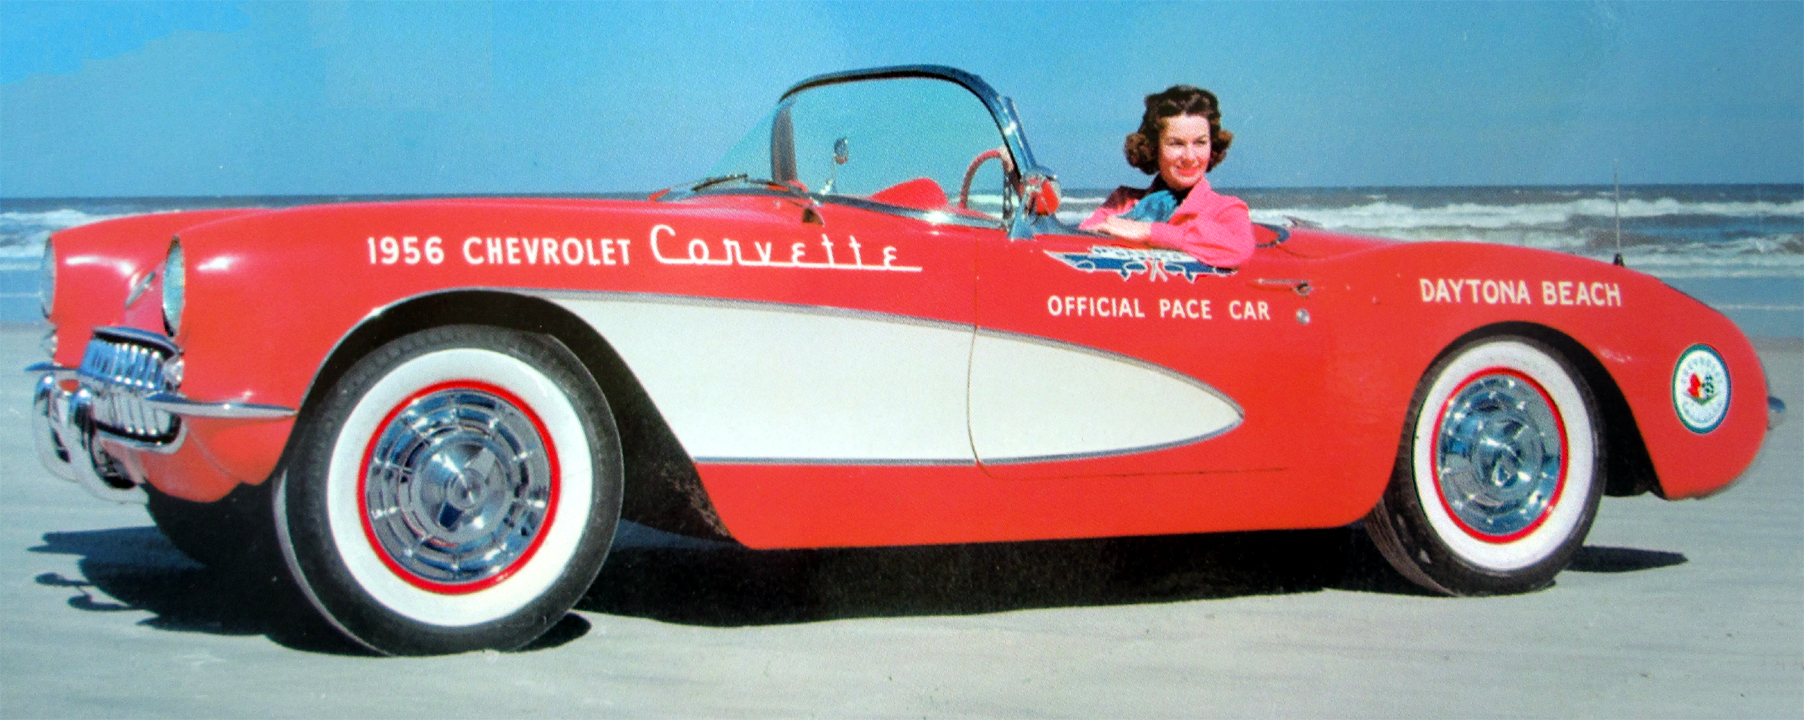 In three short years, Corvette had become a racing success story and on its way to being an American Legend. Sporting NASCAR's logo, here's the official '56 pacecar with racer Betty Skelton; also notice HJE's Corvette round logo behind back wheel.